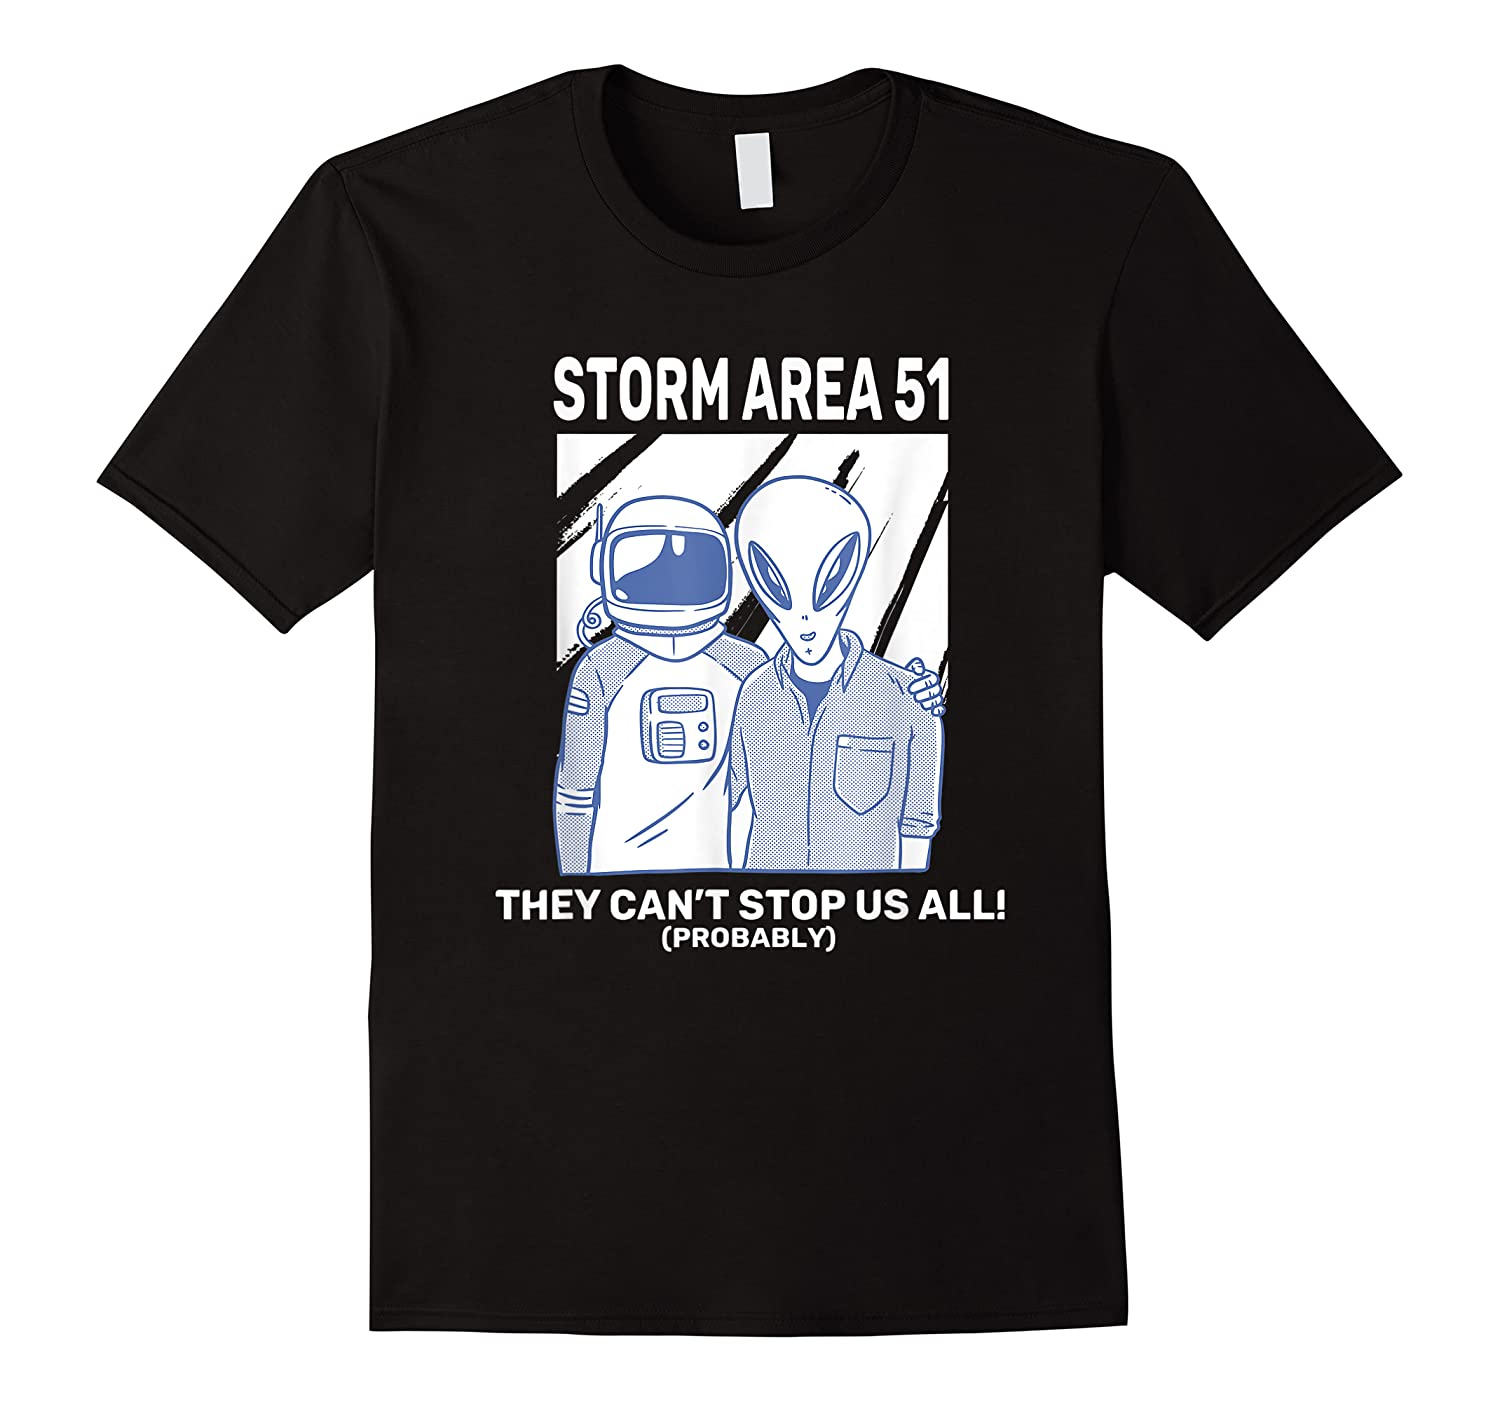 Storm Area 51 They Can't Stop Us All Shirts